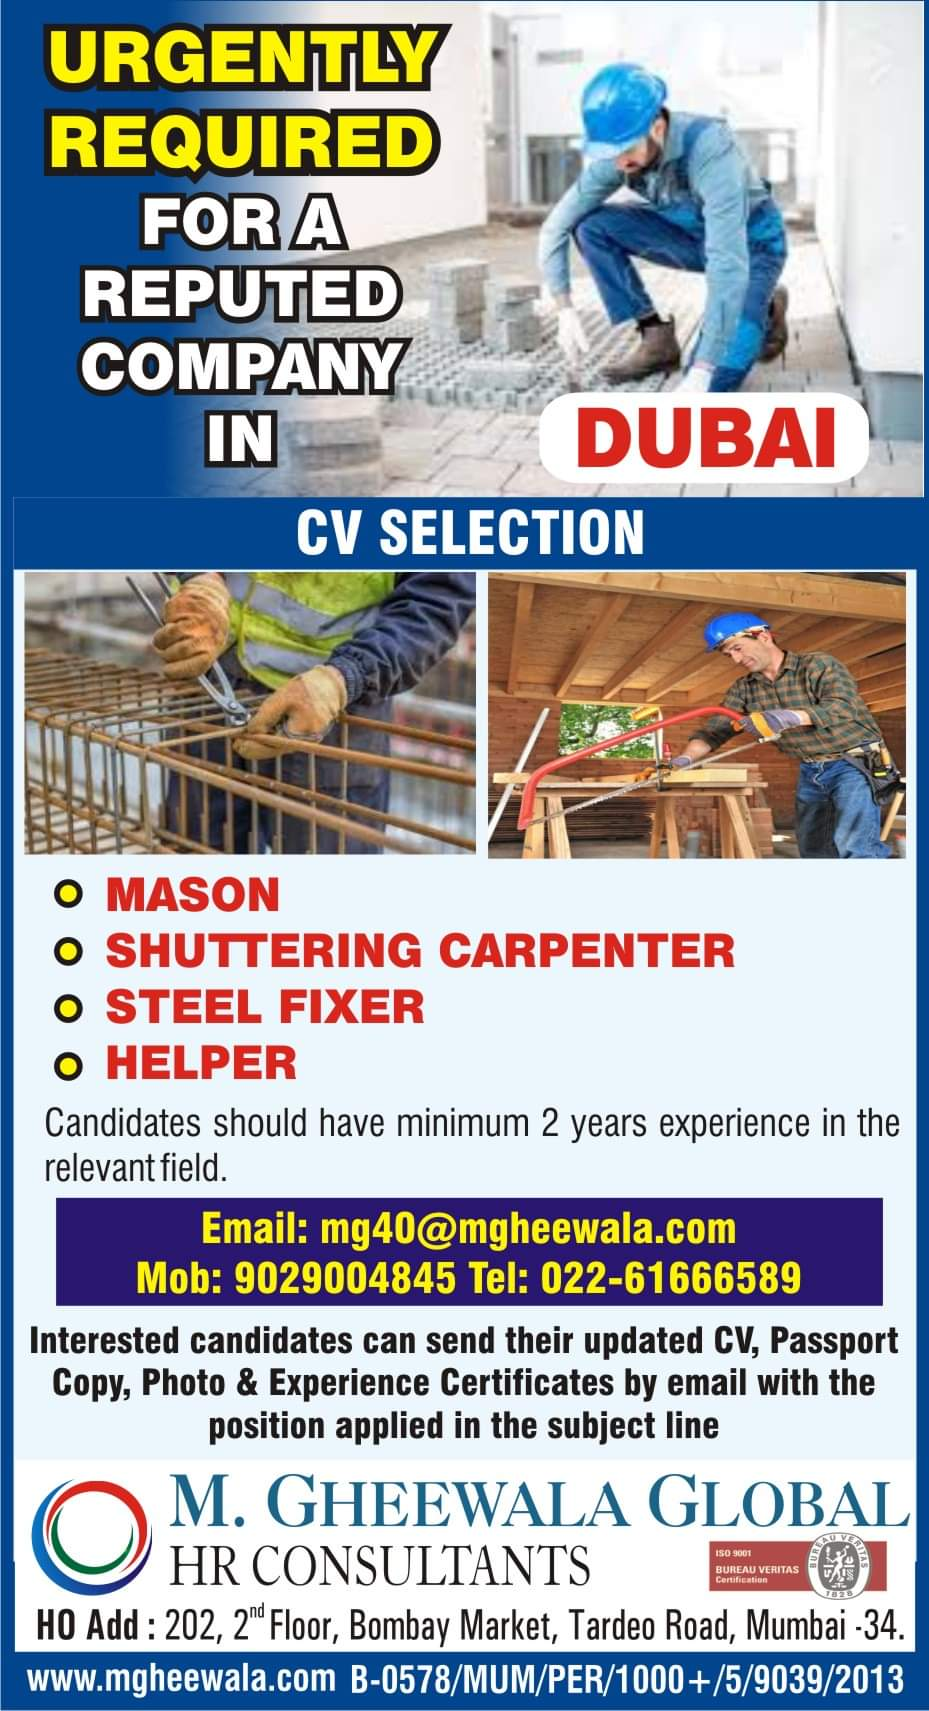 URGENTLY REQUIRED FOR A REPUTED COMPANY-DUBAI